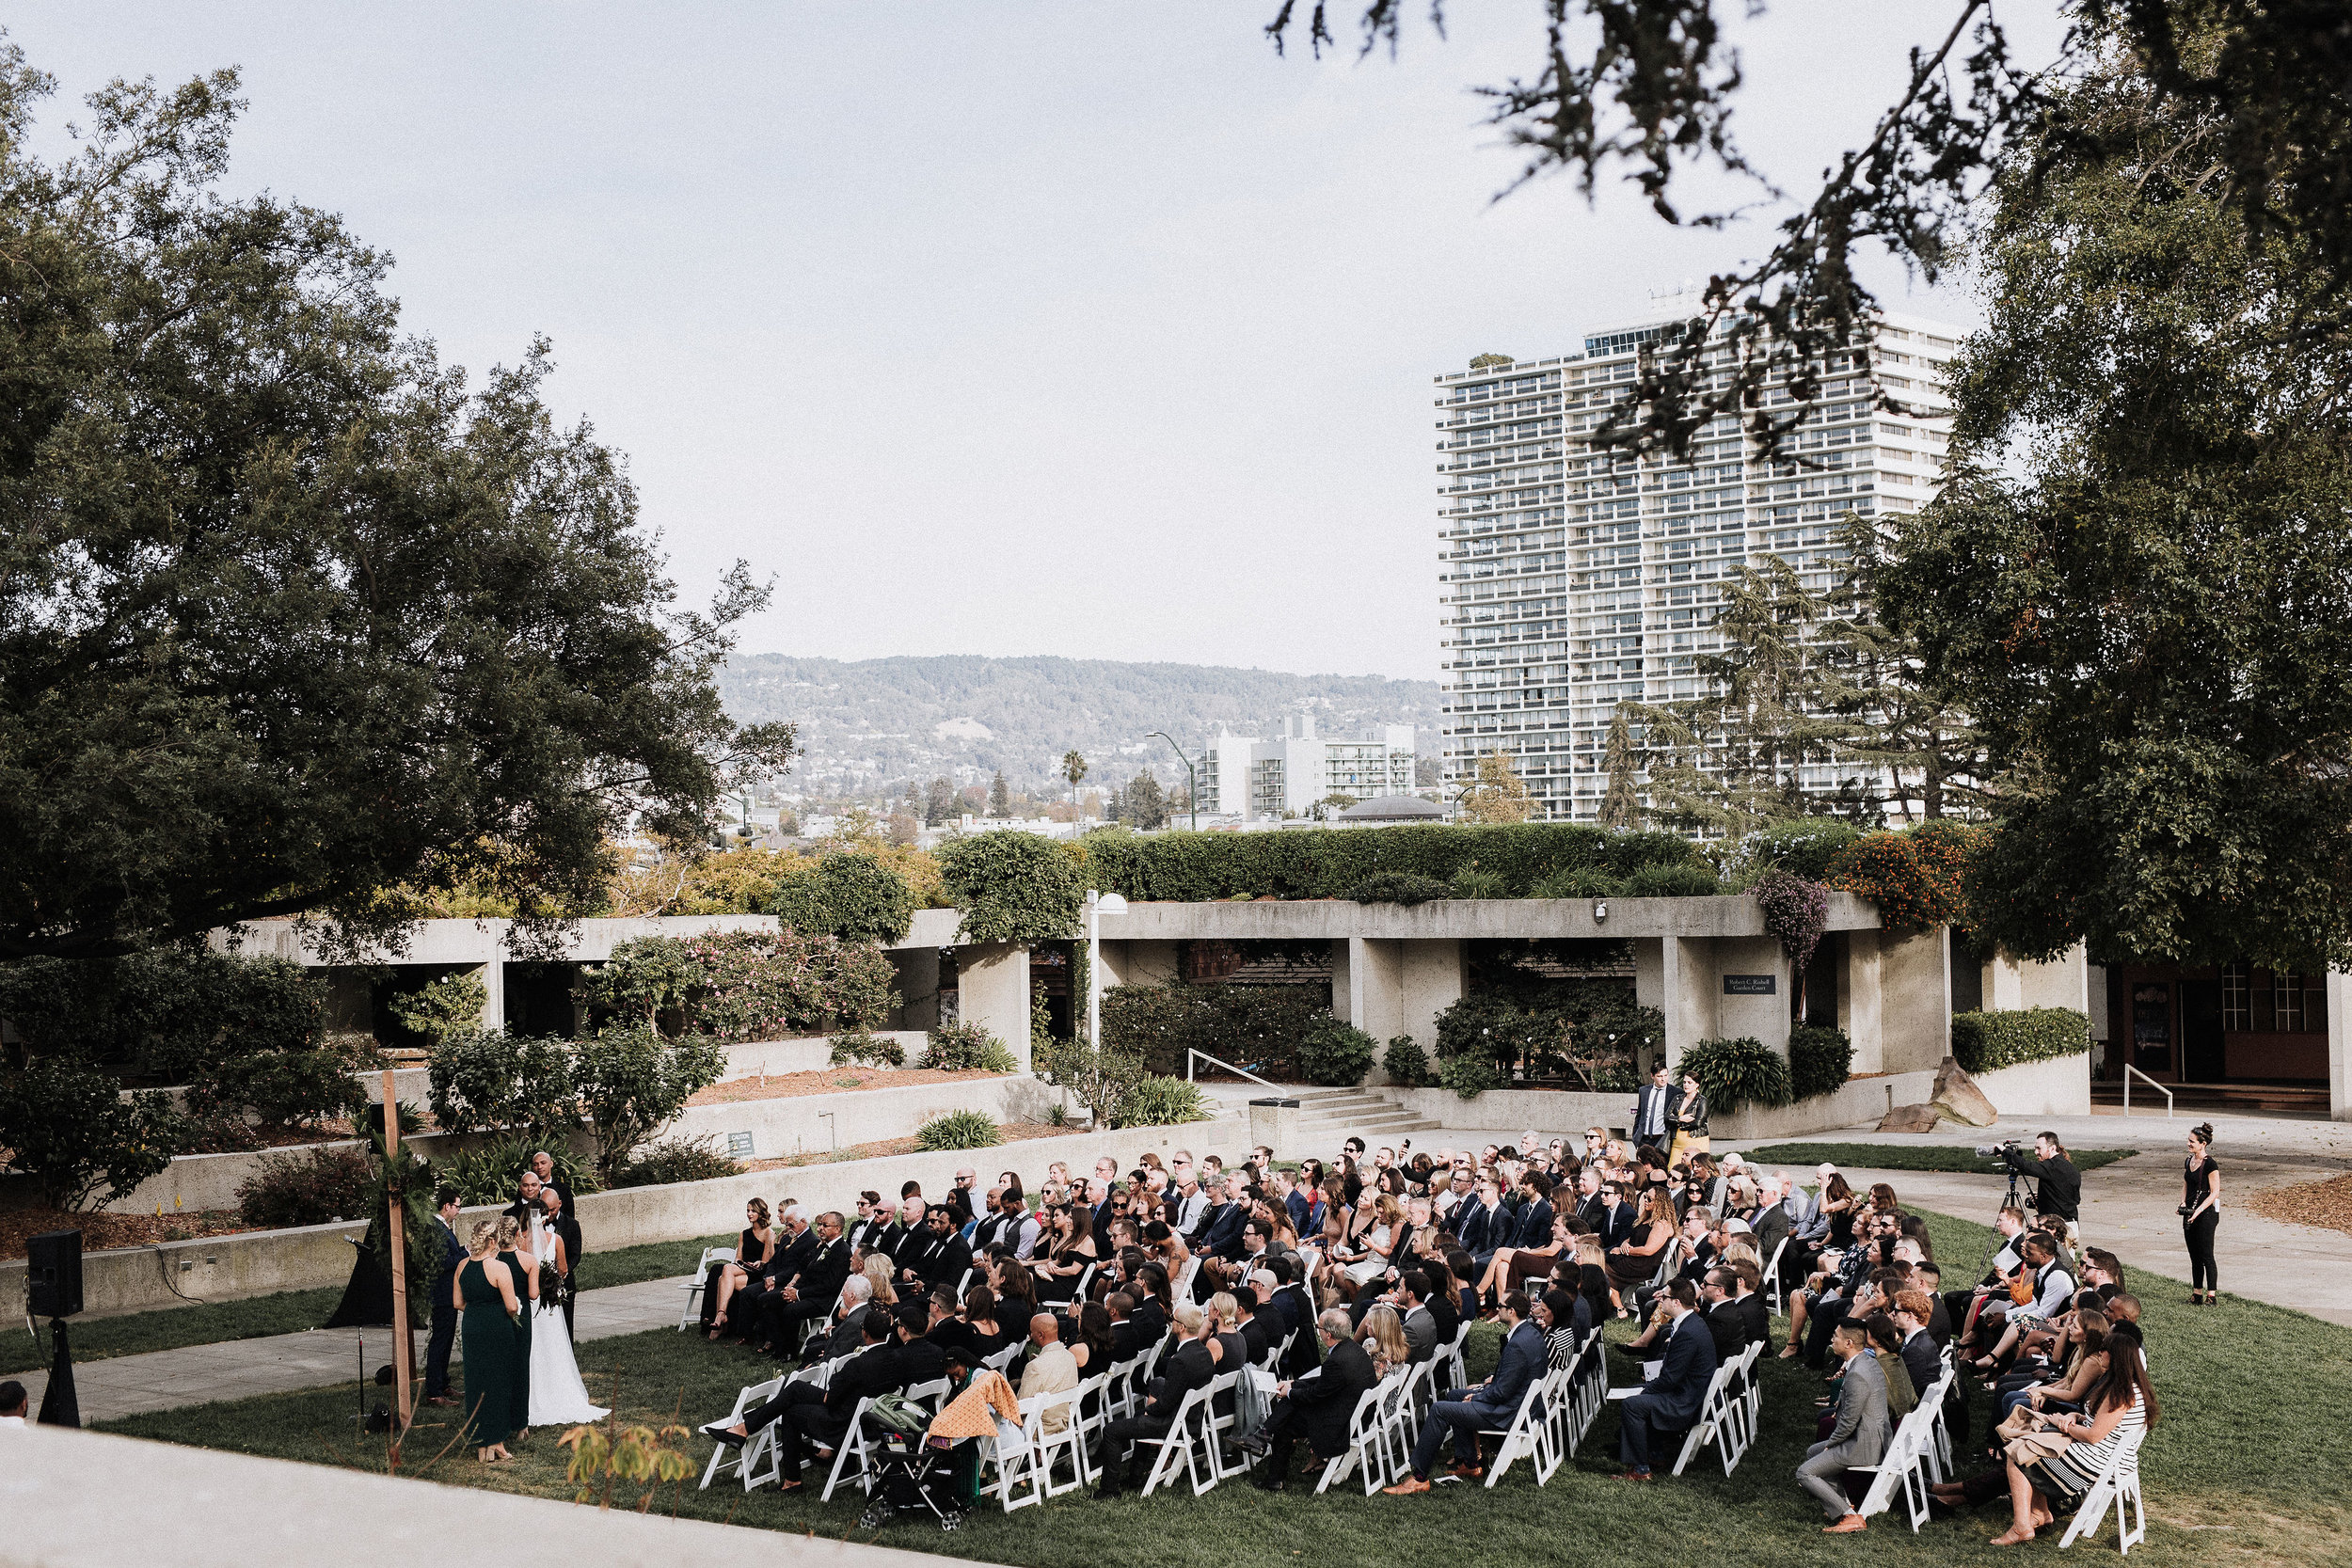 Wedding Ceremony at The Oakland Museum of California Katie Laines design and coordination